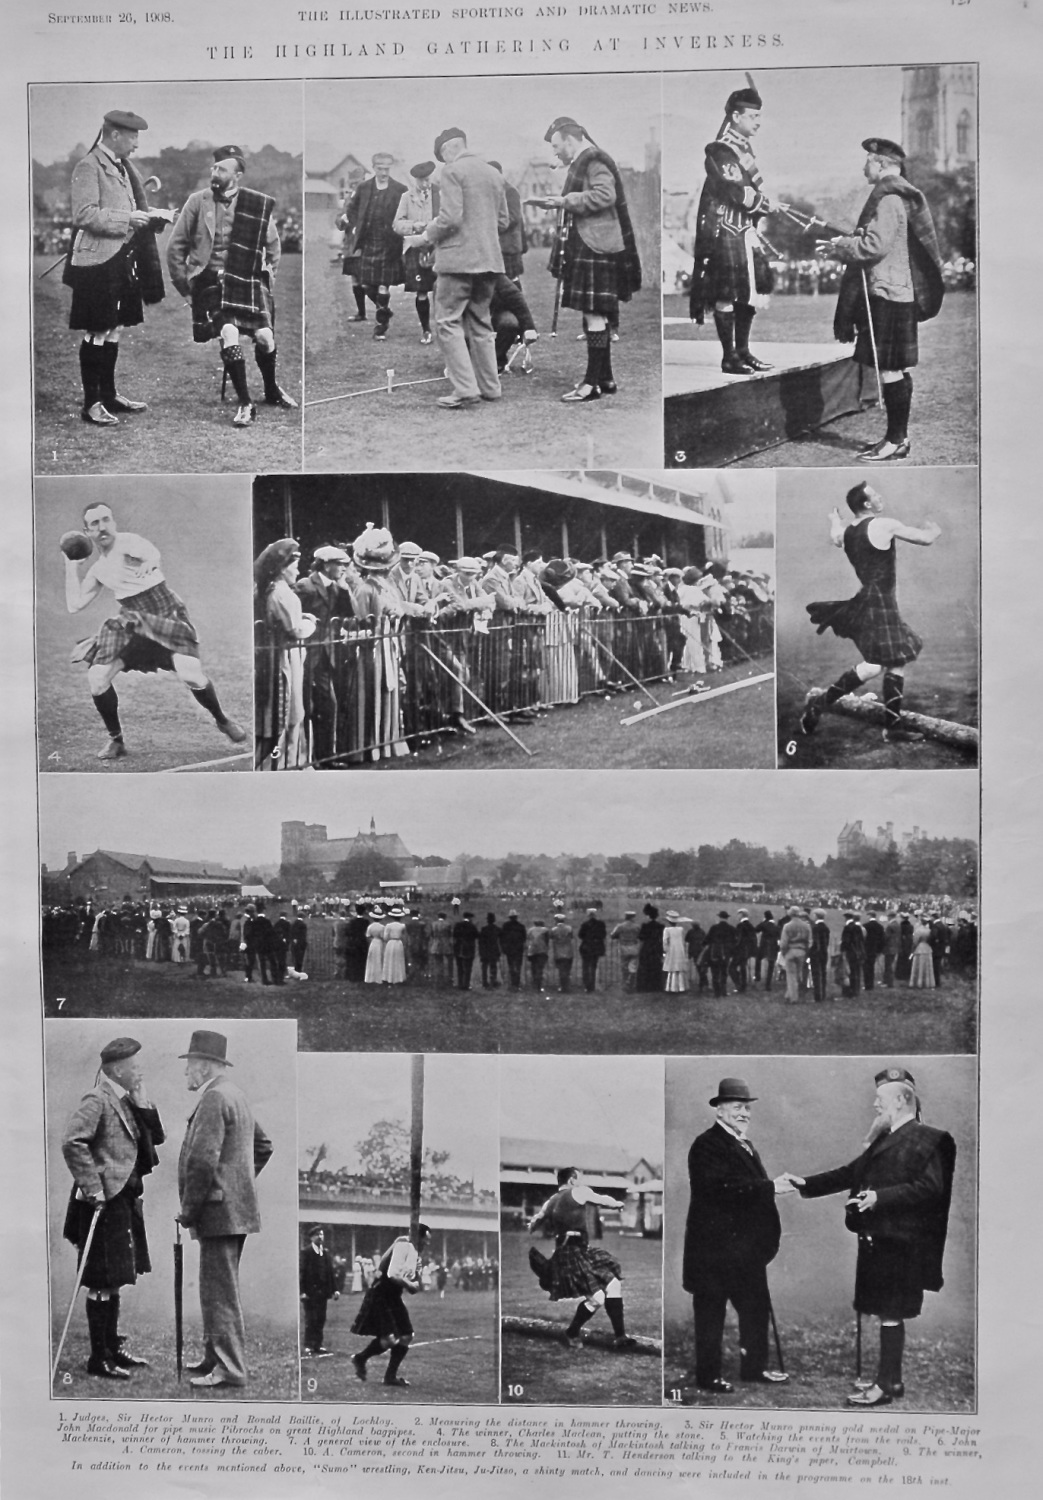 The Highland Gathering at Inverness.  1908.